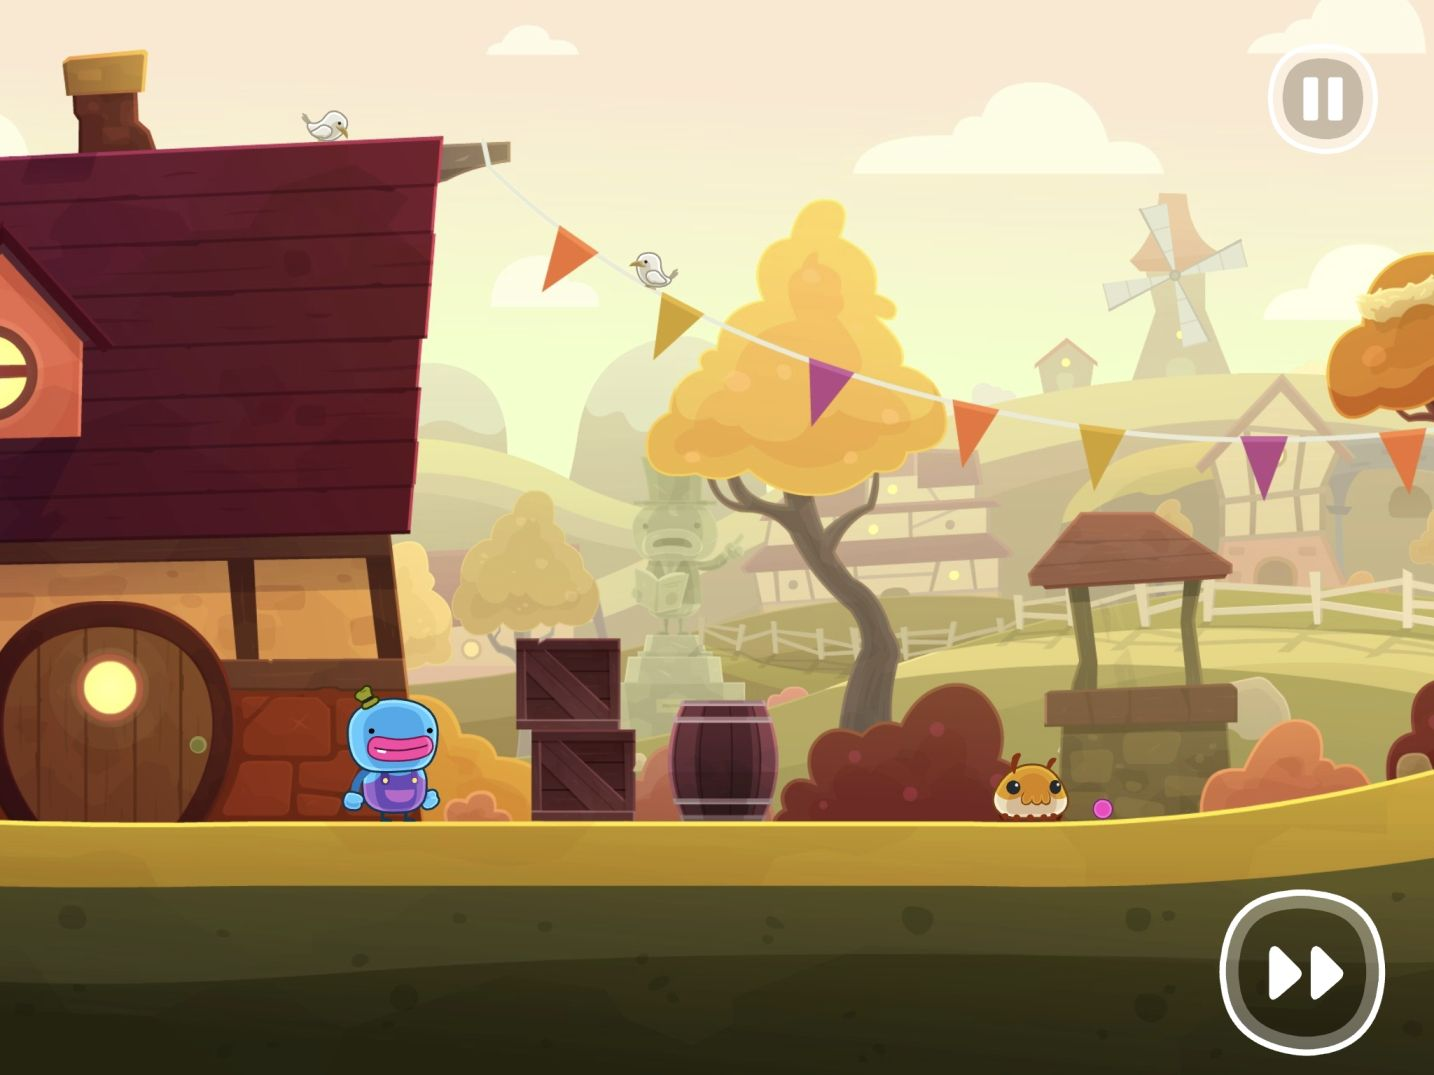 Bring You Home (copie d'écran 2 sur iPhone / iPad / Apple TV)